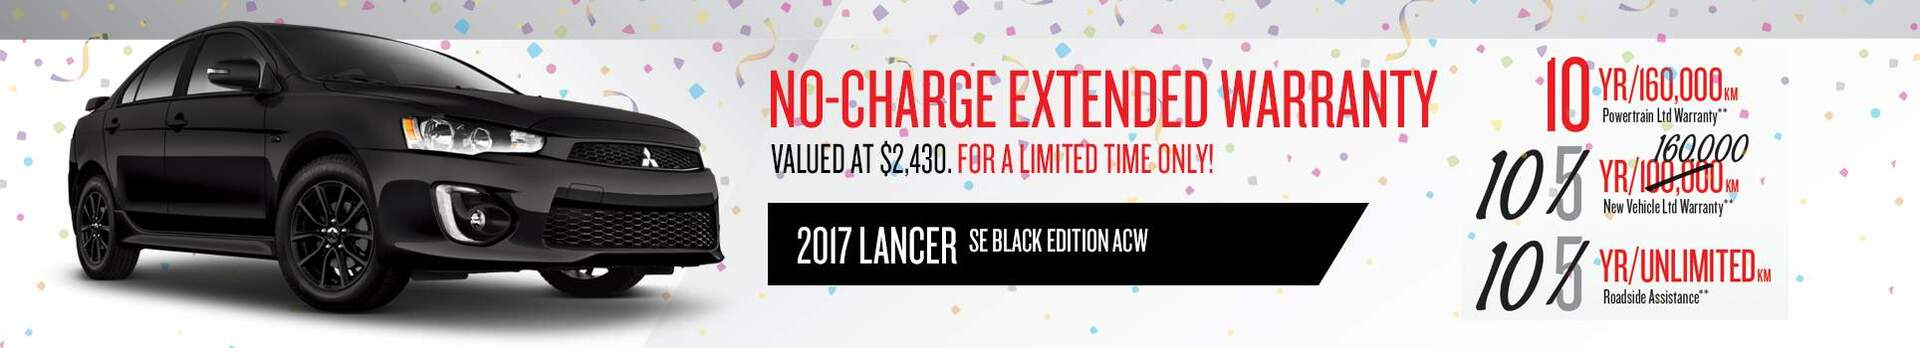 2017 Lancer No-Charge Extended Warranty